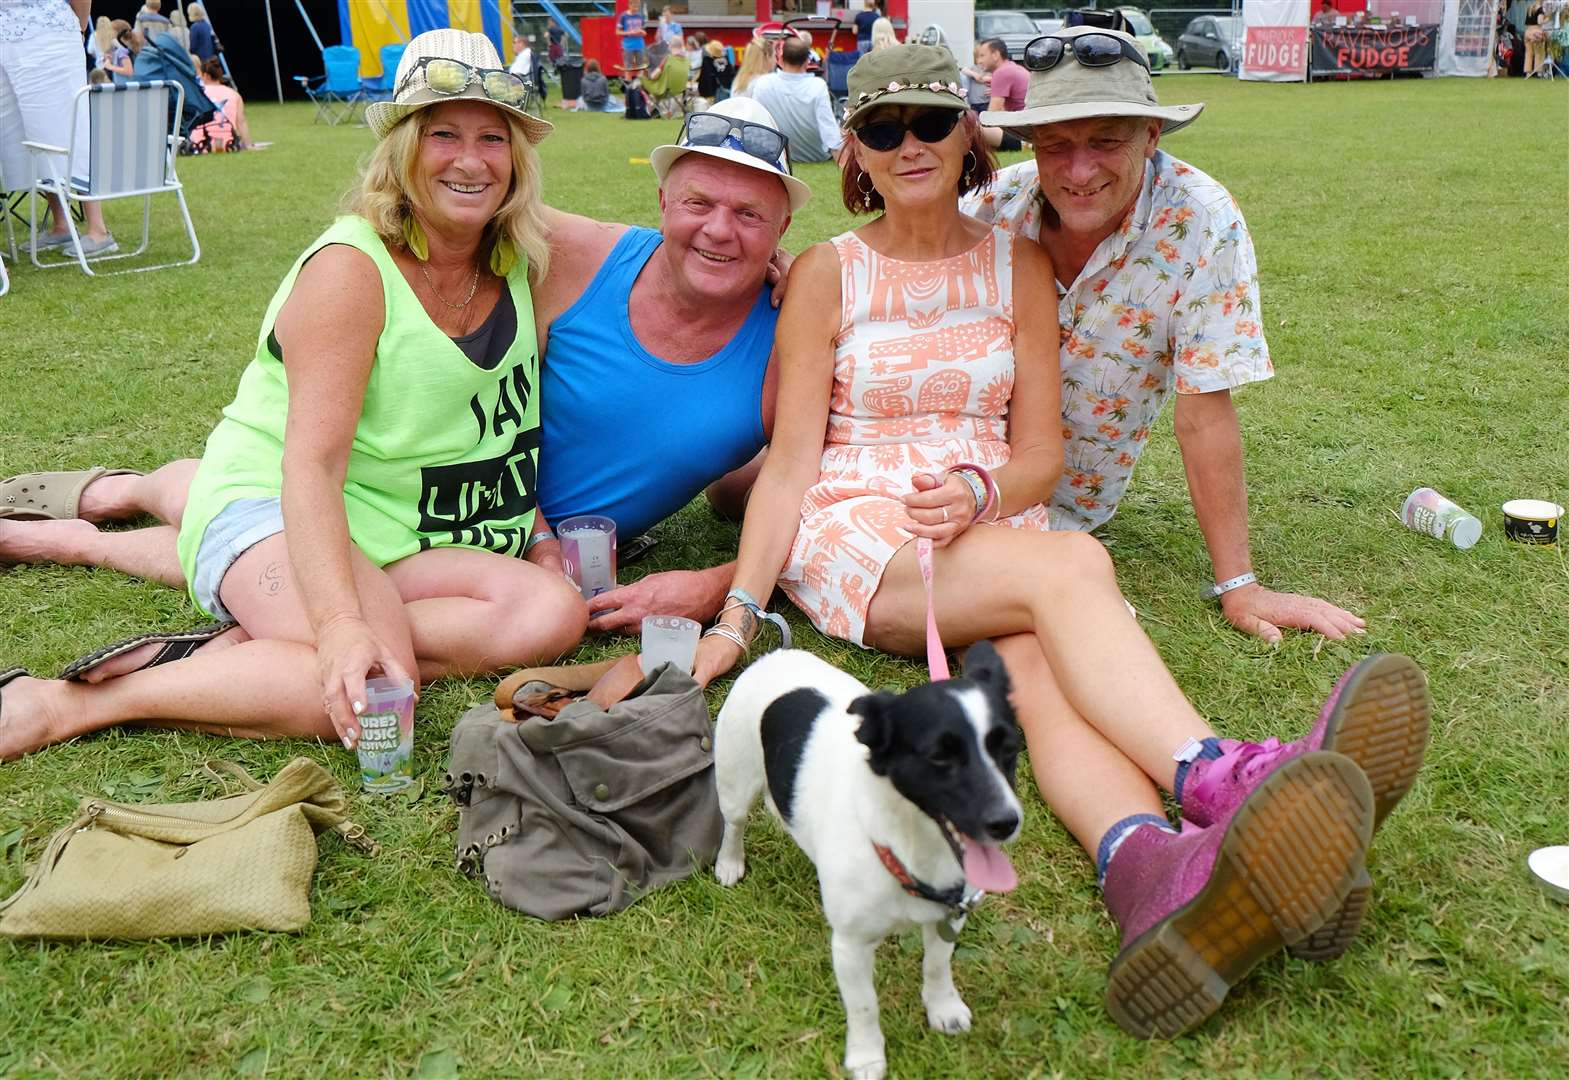 PICTURES: Bures Music Festival draws thousands to enjoy tunes in the sun